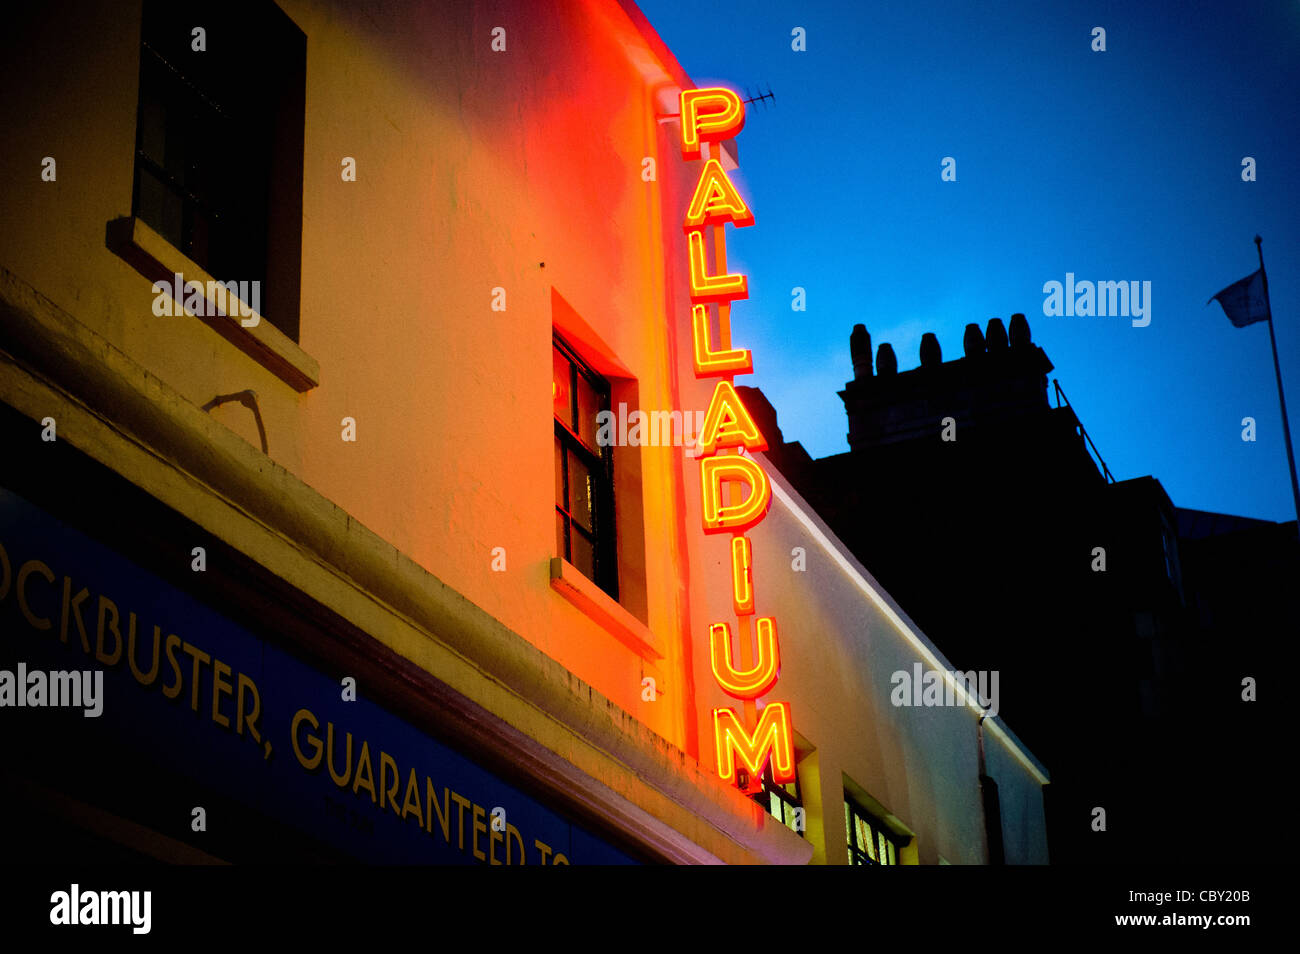 Red and yellow neon sign outside Palladium theatre, London. - Stock Image